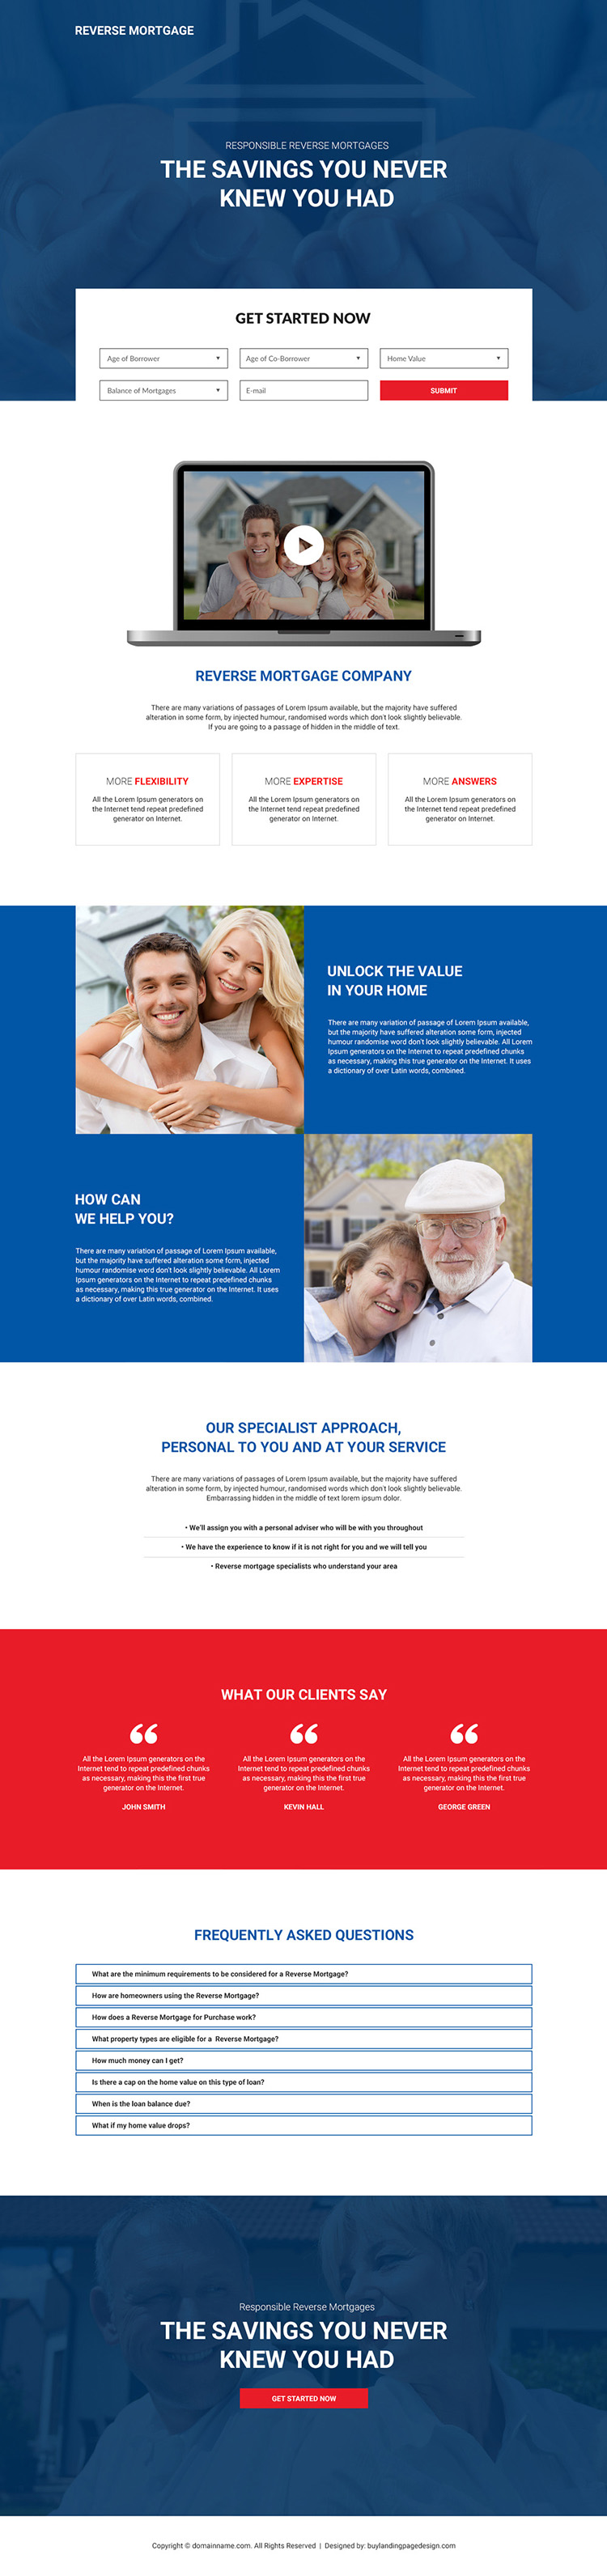 reverse mortgage company responsive landing page design